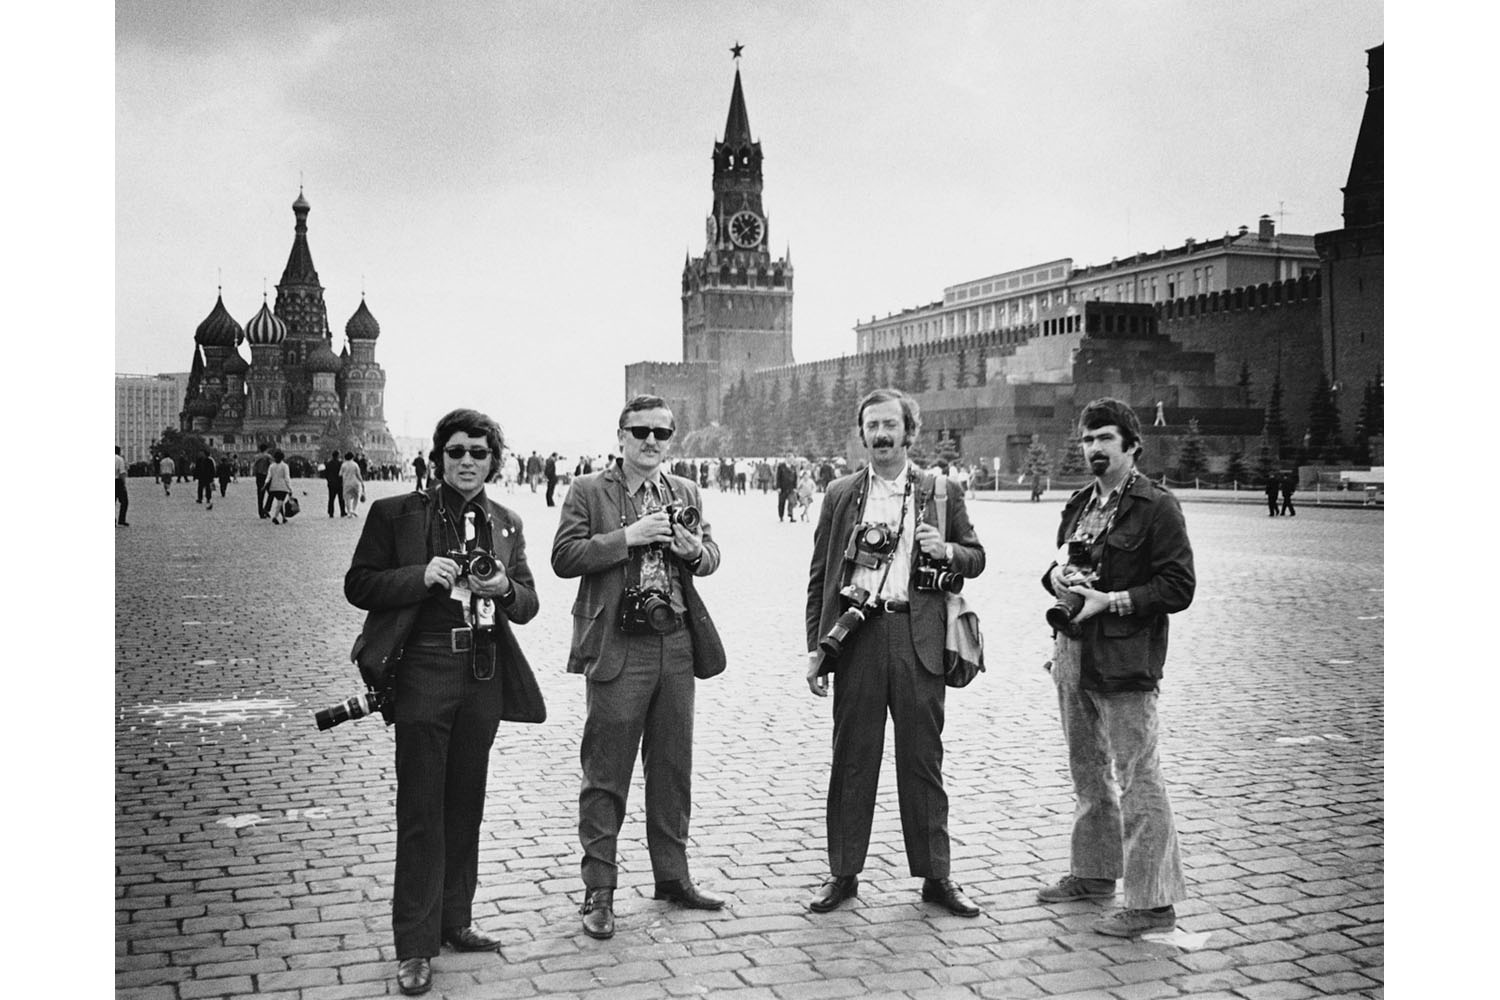 Photographers Darryl Heikes, John Duricker, Wally McNamee, and Chick Harrity stand in Red Square on assignment to cover President Nixon's visit in 1972.